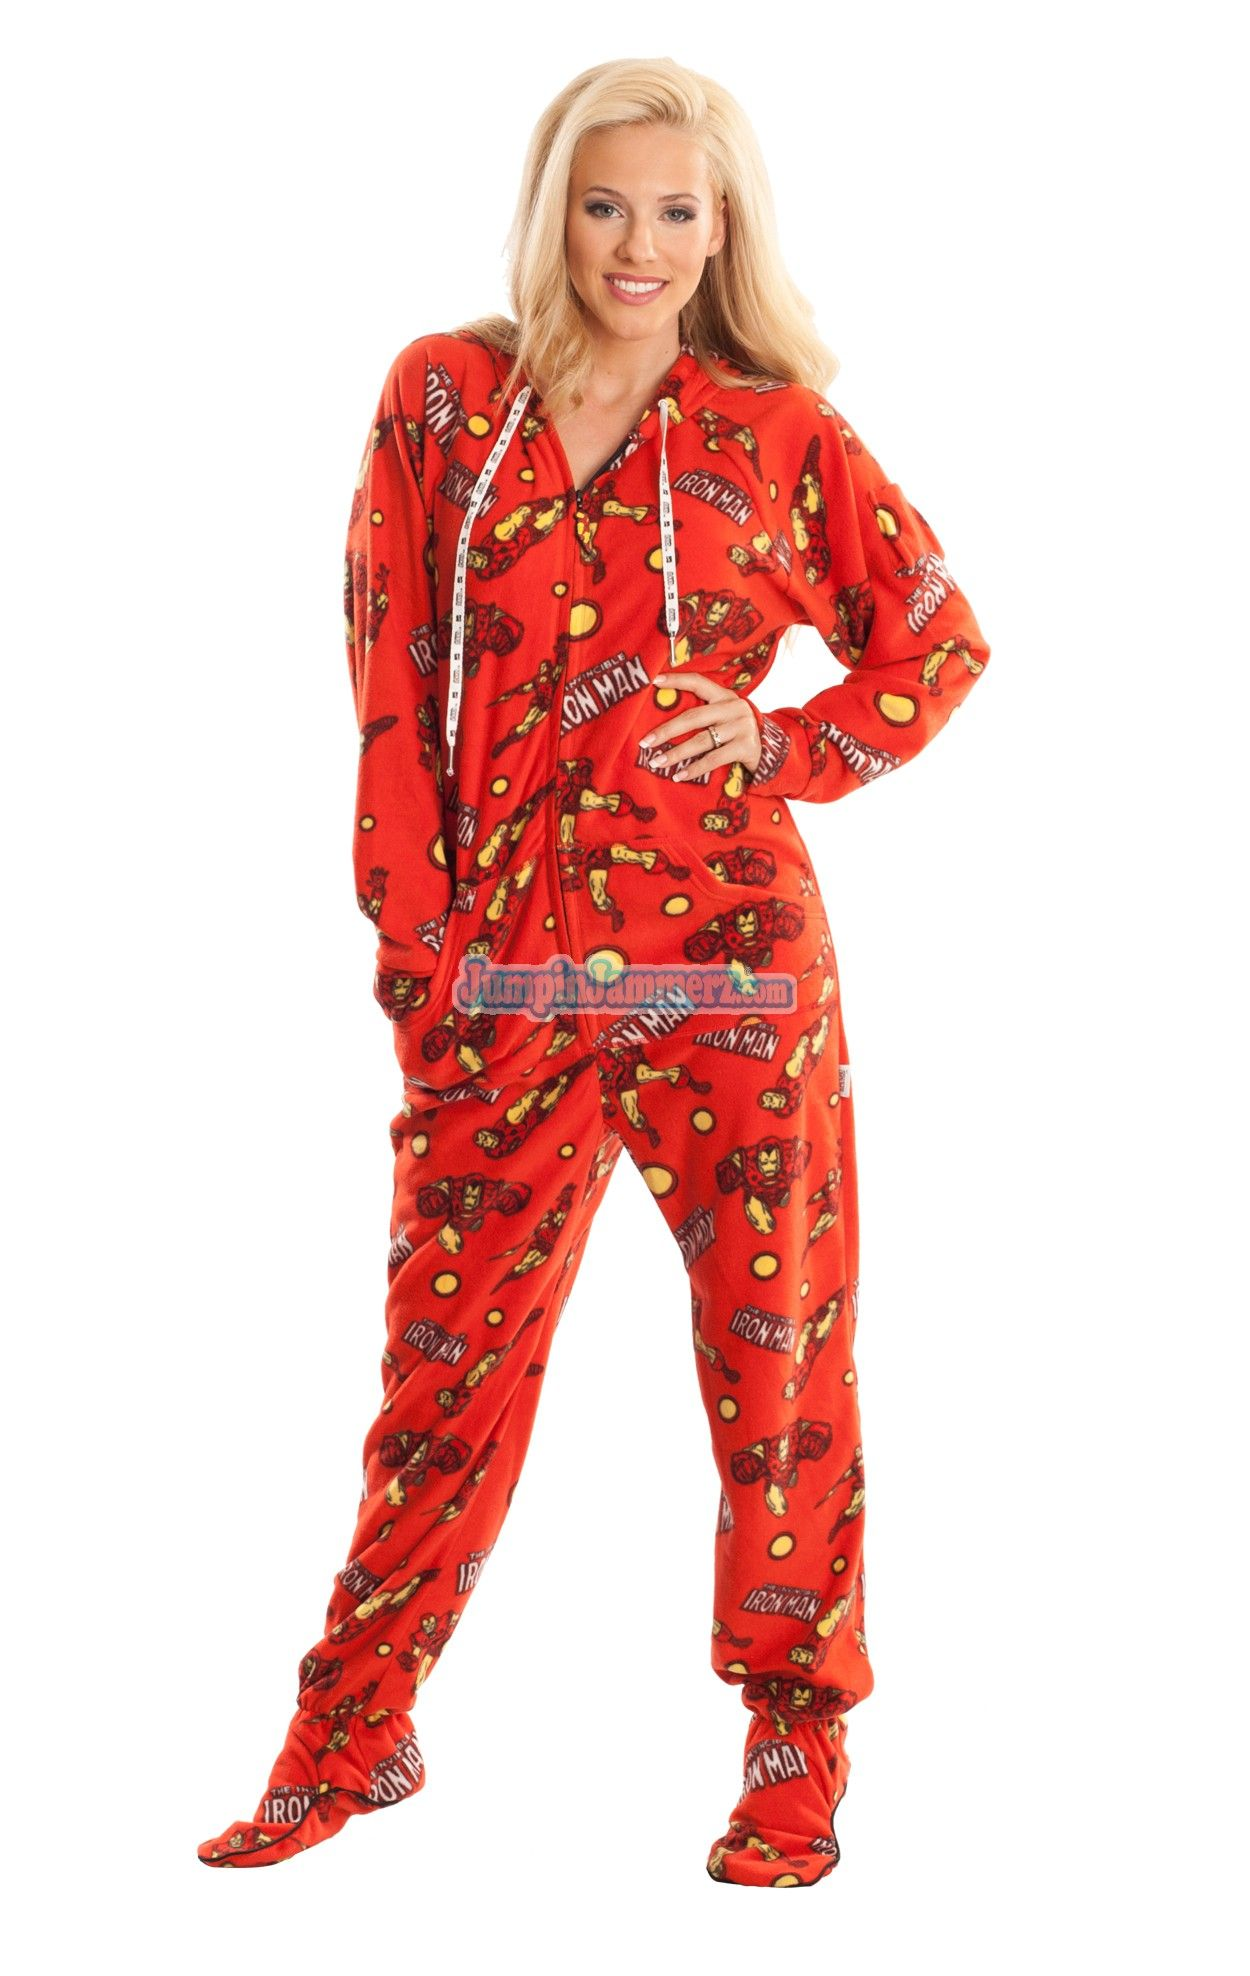 aee33267cf Ironman - Marvel Comics - Pajamas Footie PJs Onesies One Piece Adult Pajamas